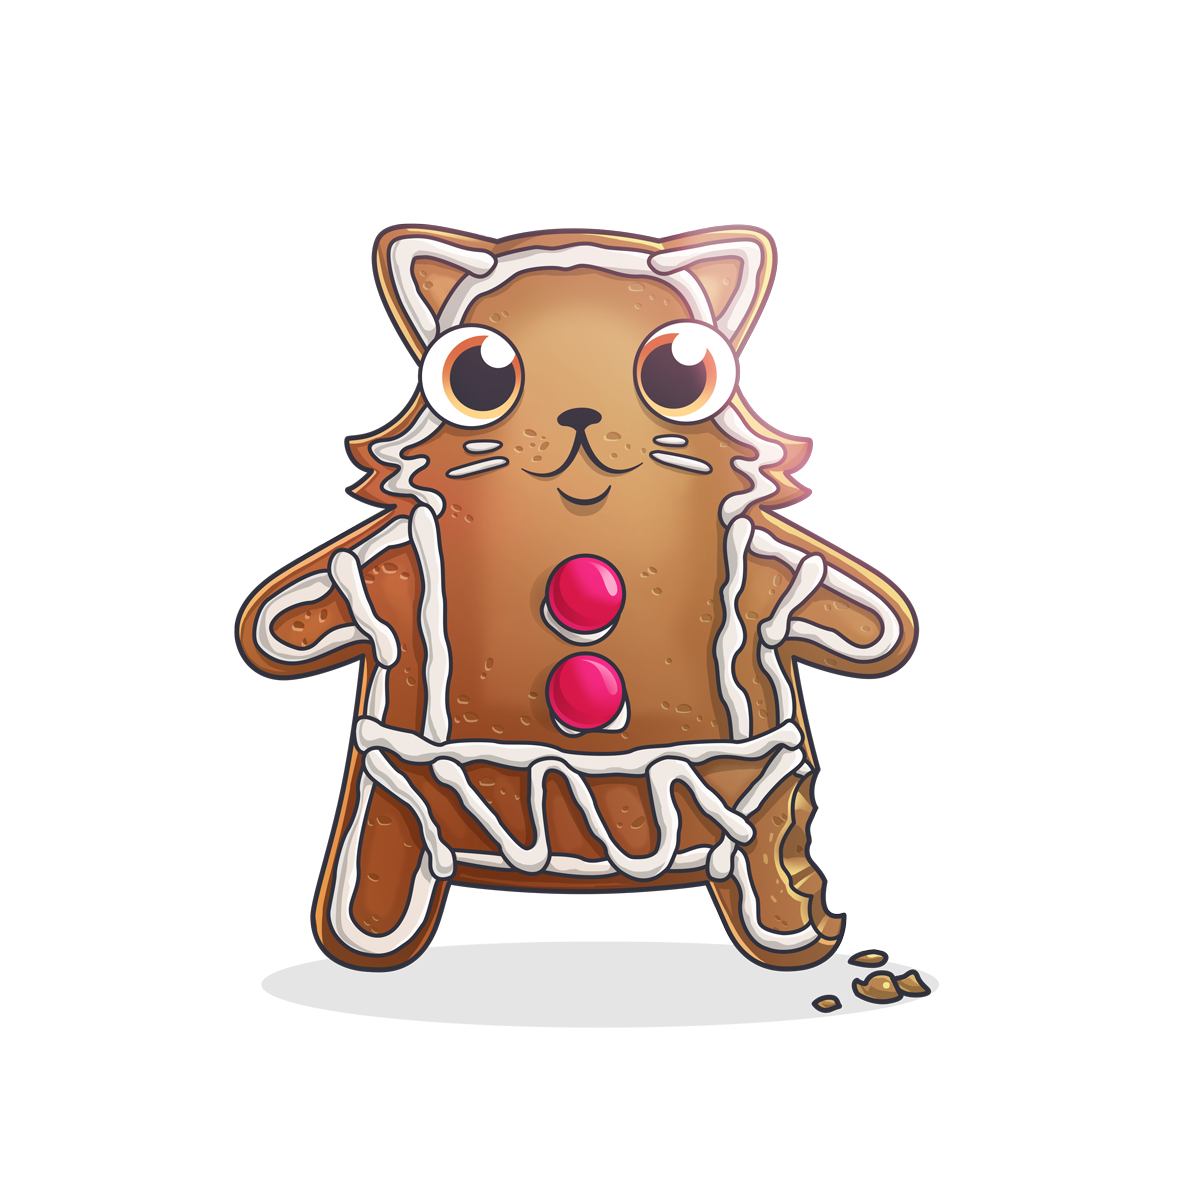 cryptokitty #1303450